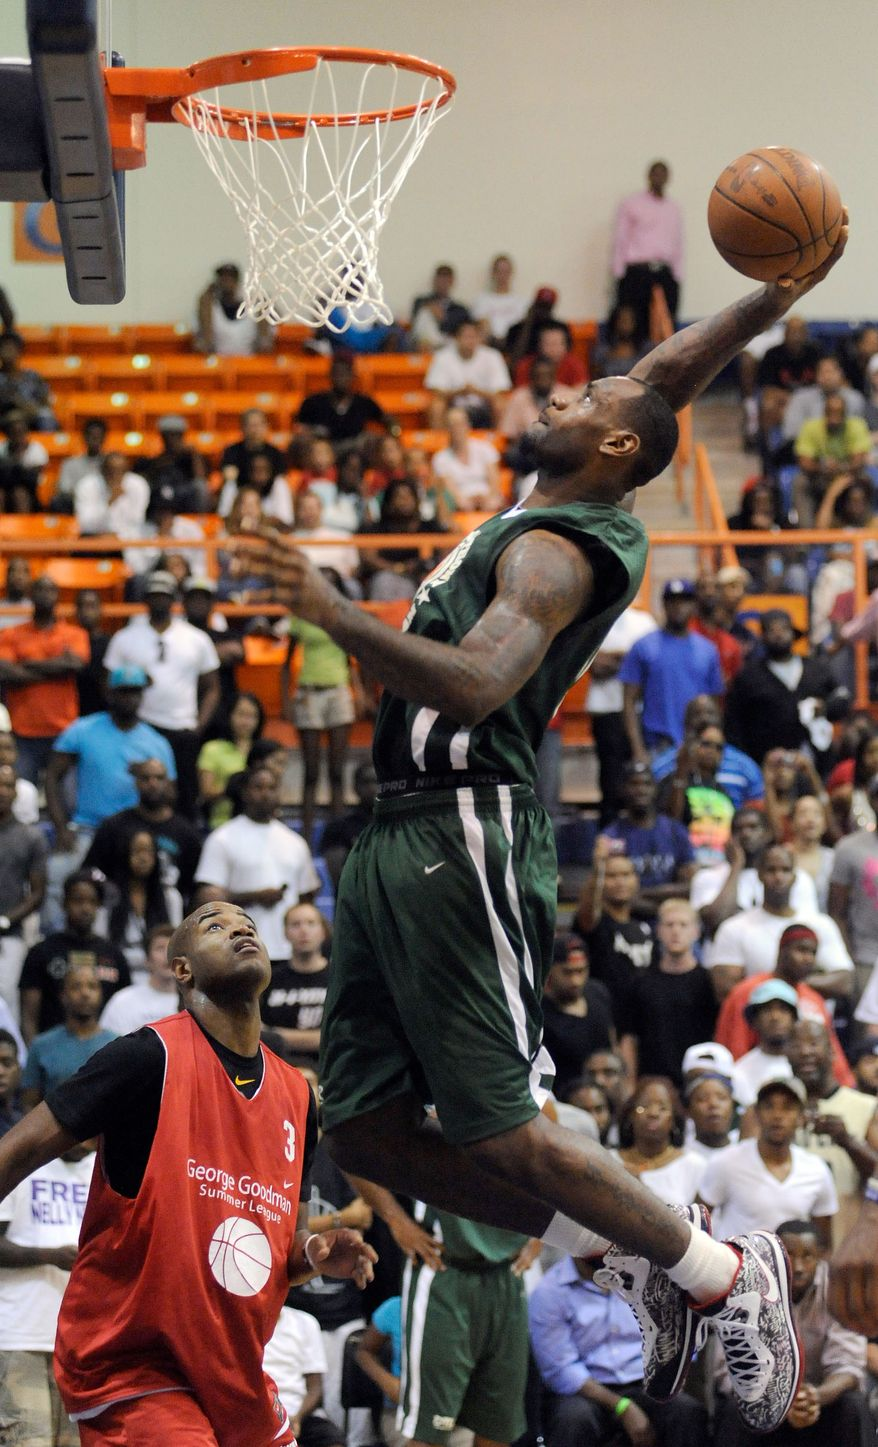 LeBron James, right, of the Miami Heat, dunks against Jarrett Jack, left, of the New Orleans Hornets, during a charity basketball game hosted by Carmelo Anthony of the New York Knicks, Tuesday, Aug. 30, 2011, at Morgan State University in Baltimore. (AP Photo/Steve Ruark)